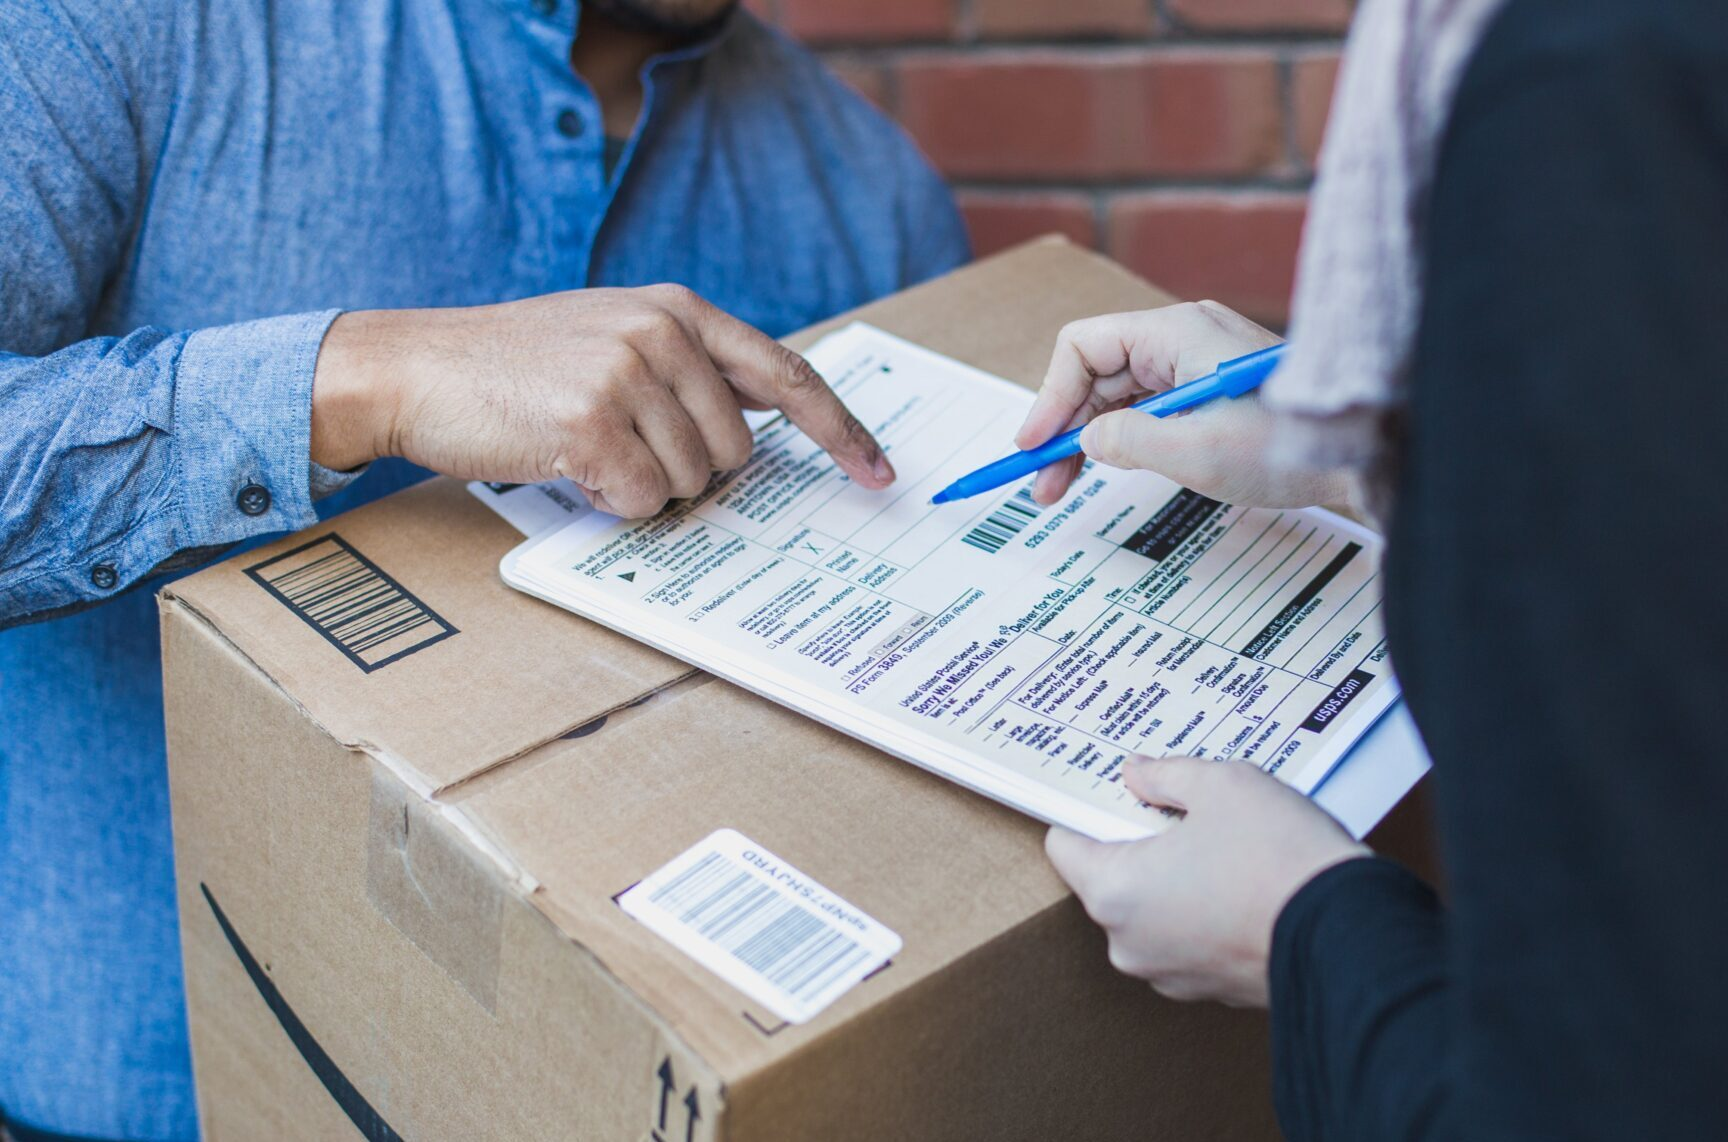 signing-shipping-forms-for-large-box